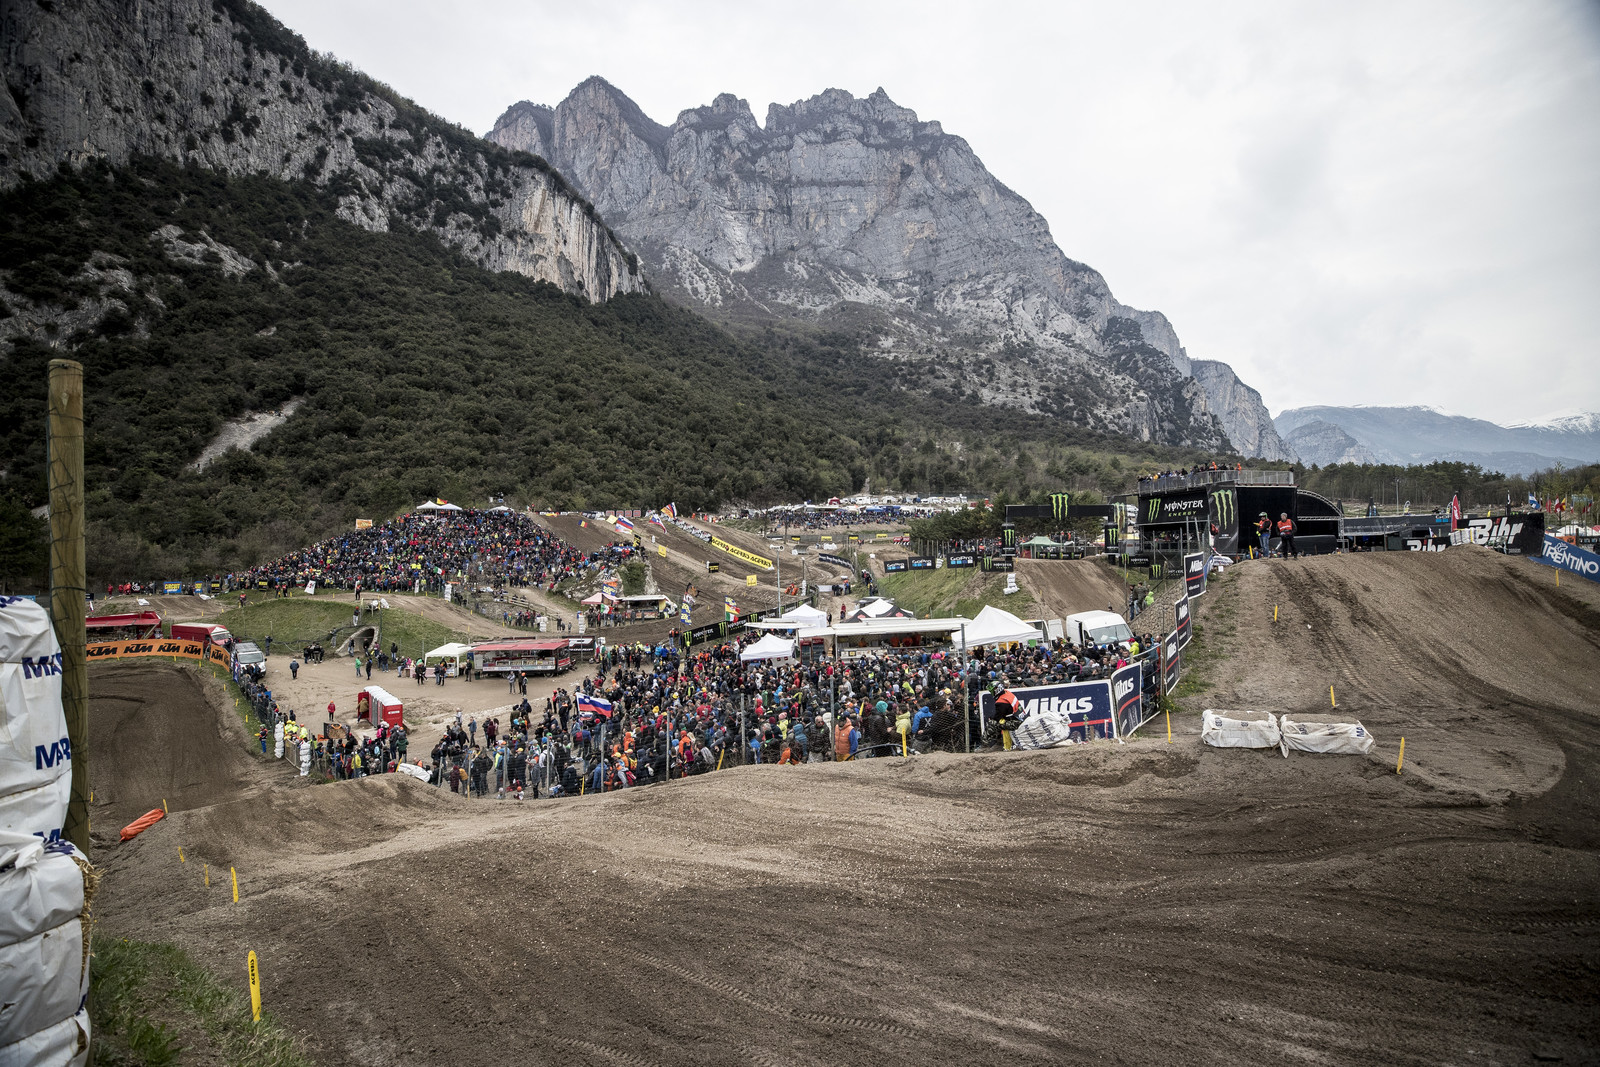 The Trentino track is one of the most picturesque on the entire circuit. Tucked in the southern section of the Dolomites, the track has natural elevation, but it also gets super rough with hard edges and dry sections.